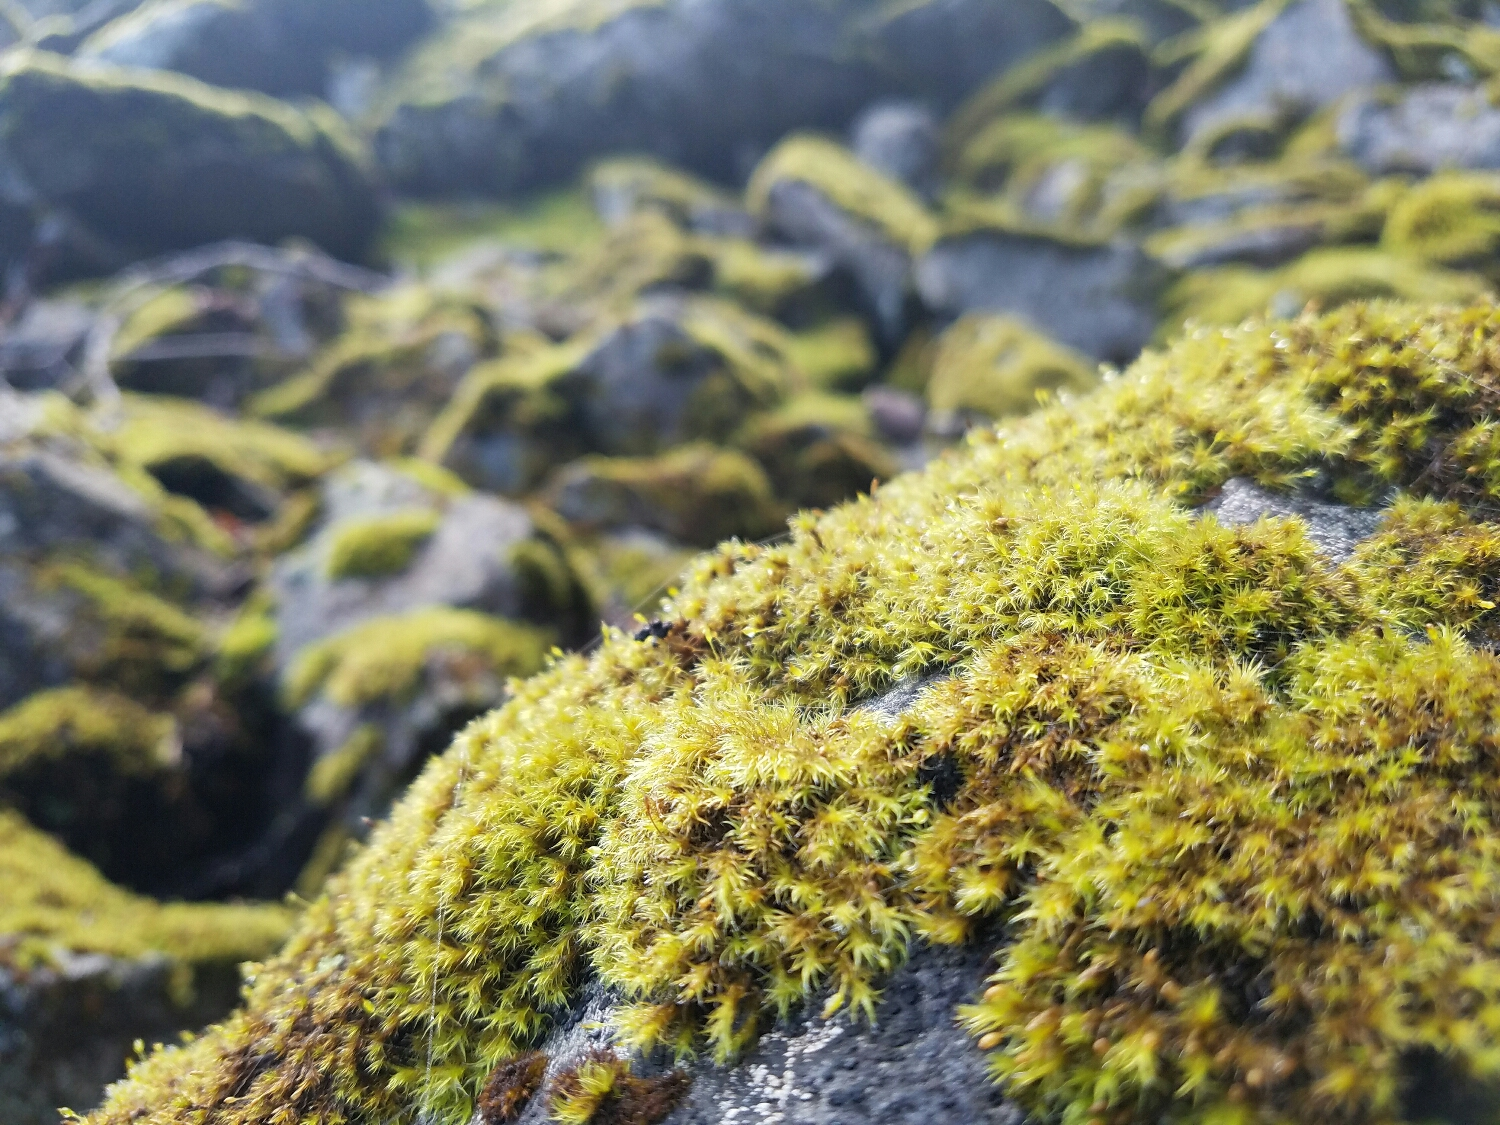 the further north we go, the more moss that appears.